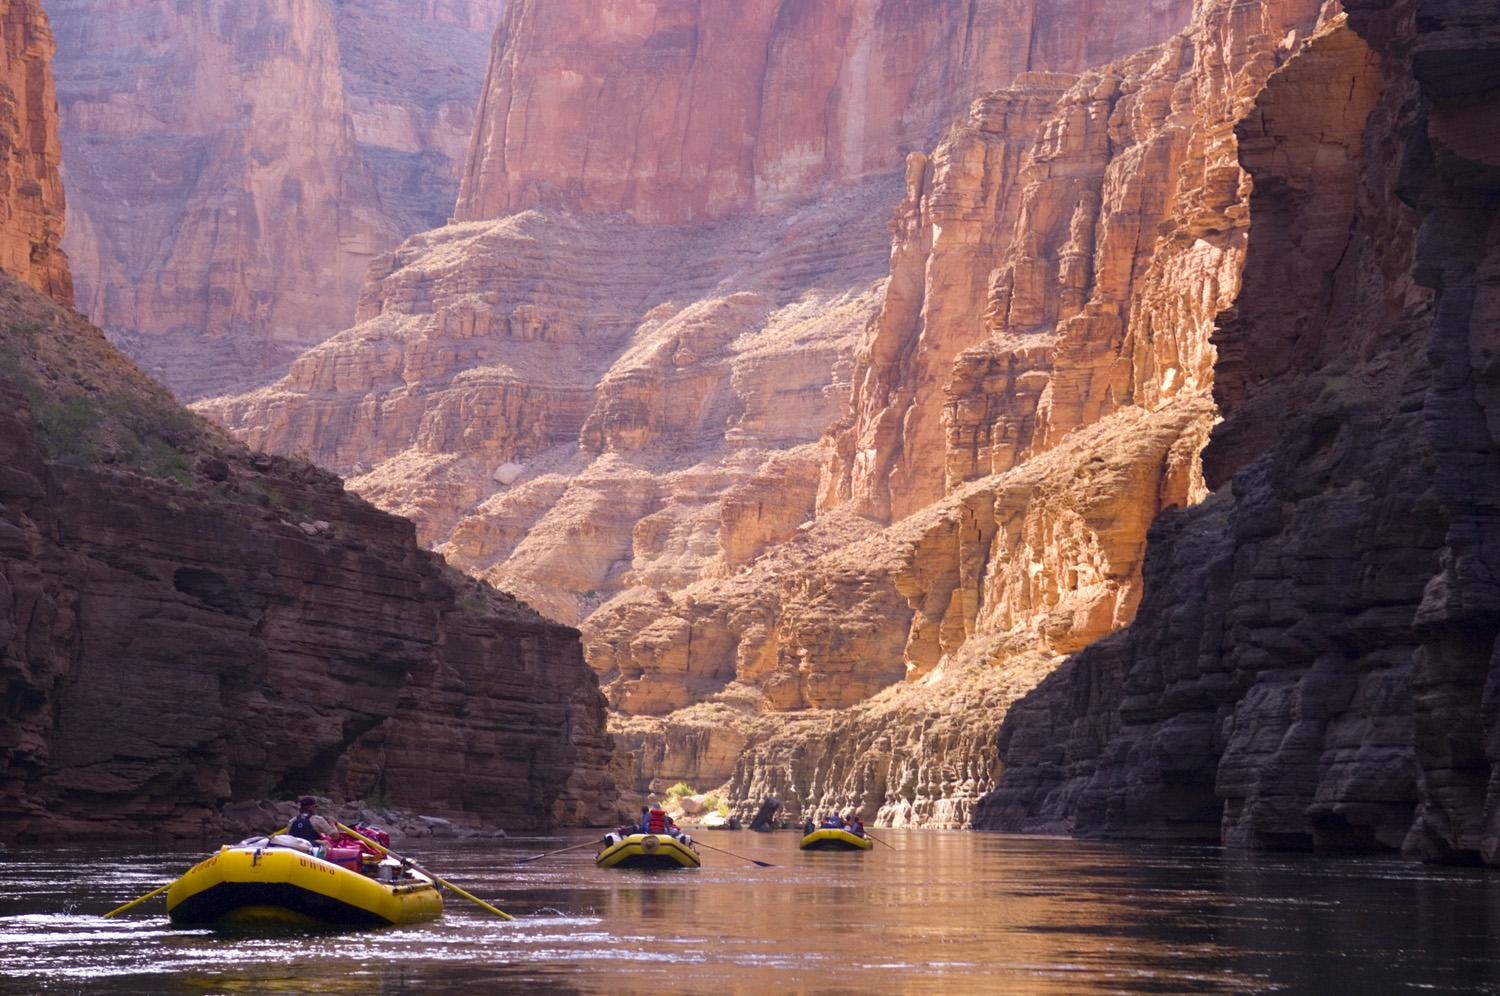 Grand Canyon River Rafting HD Wallpaper, Backgrounds Image